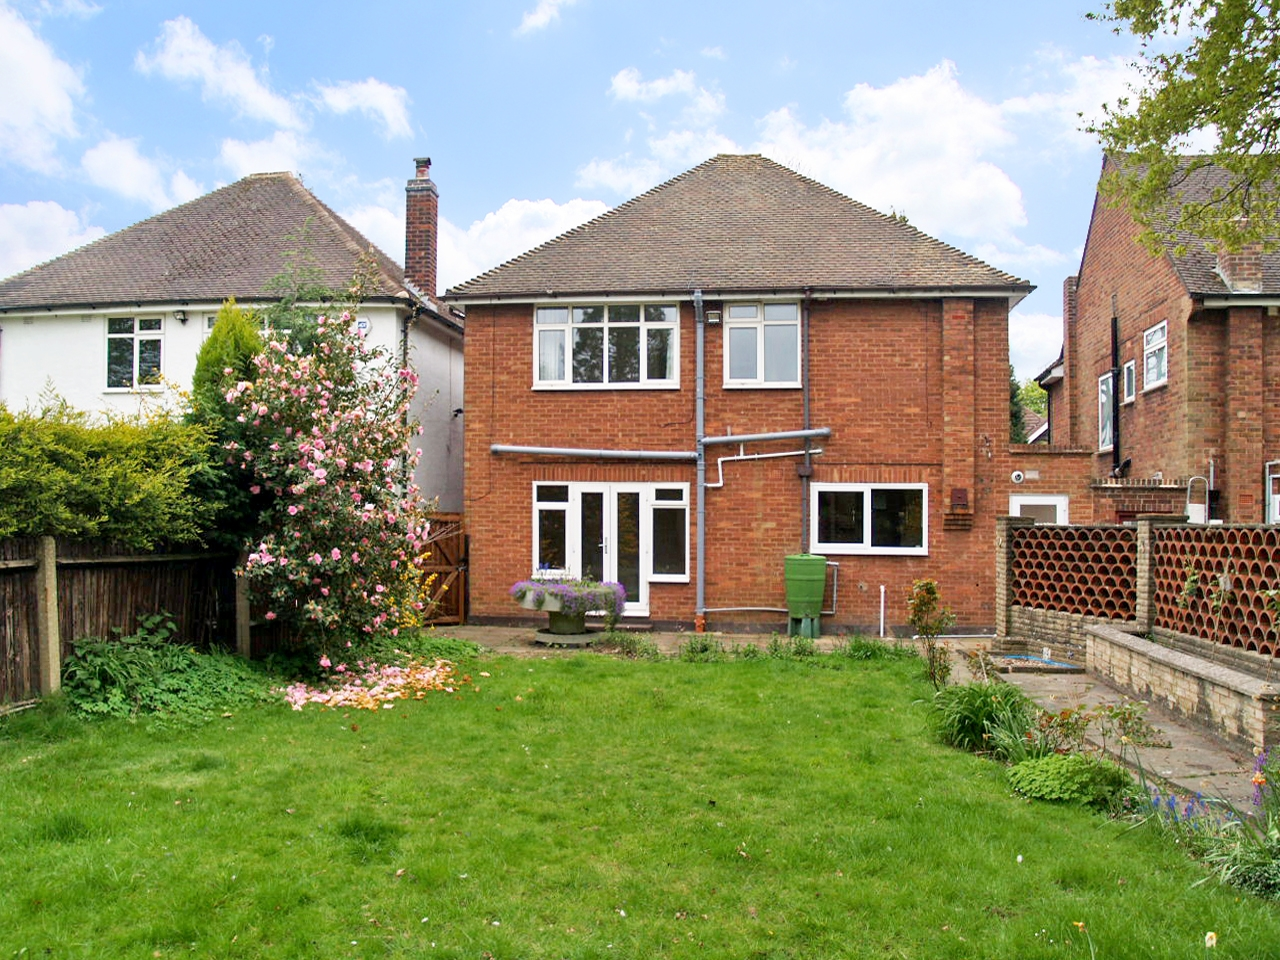 4 bedroom detached house SSTC in Solihull - photograph 15.